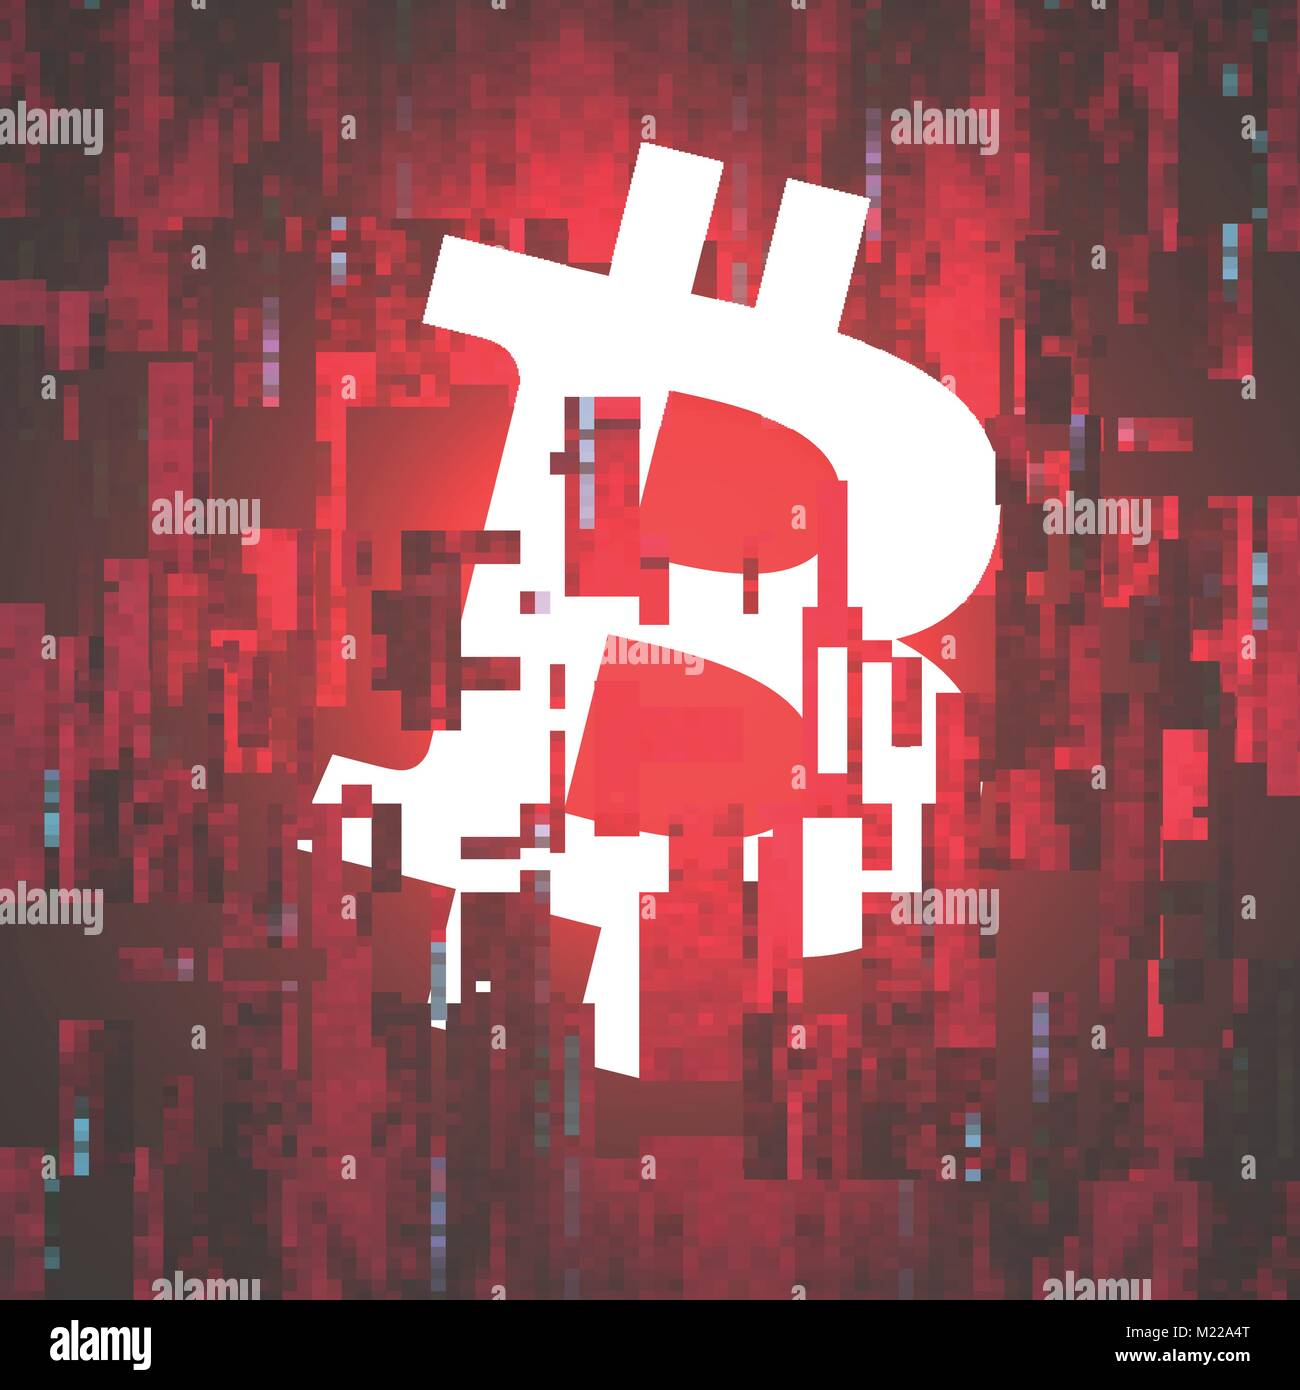 Kwd currency symbol choice image symbol and sign ideas digital currency symbol bitcoin on corrupted pixel background digital currency symbol bitcoin on corrupted pixel background biocorpaavc